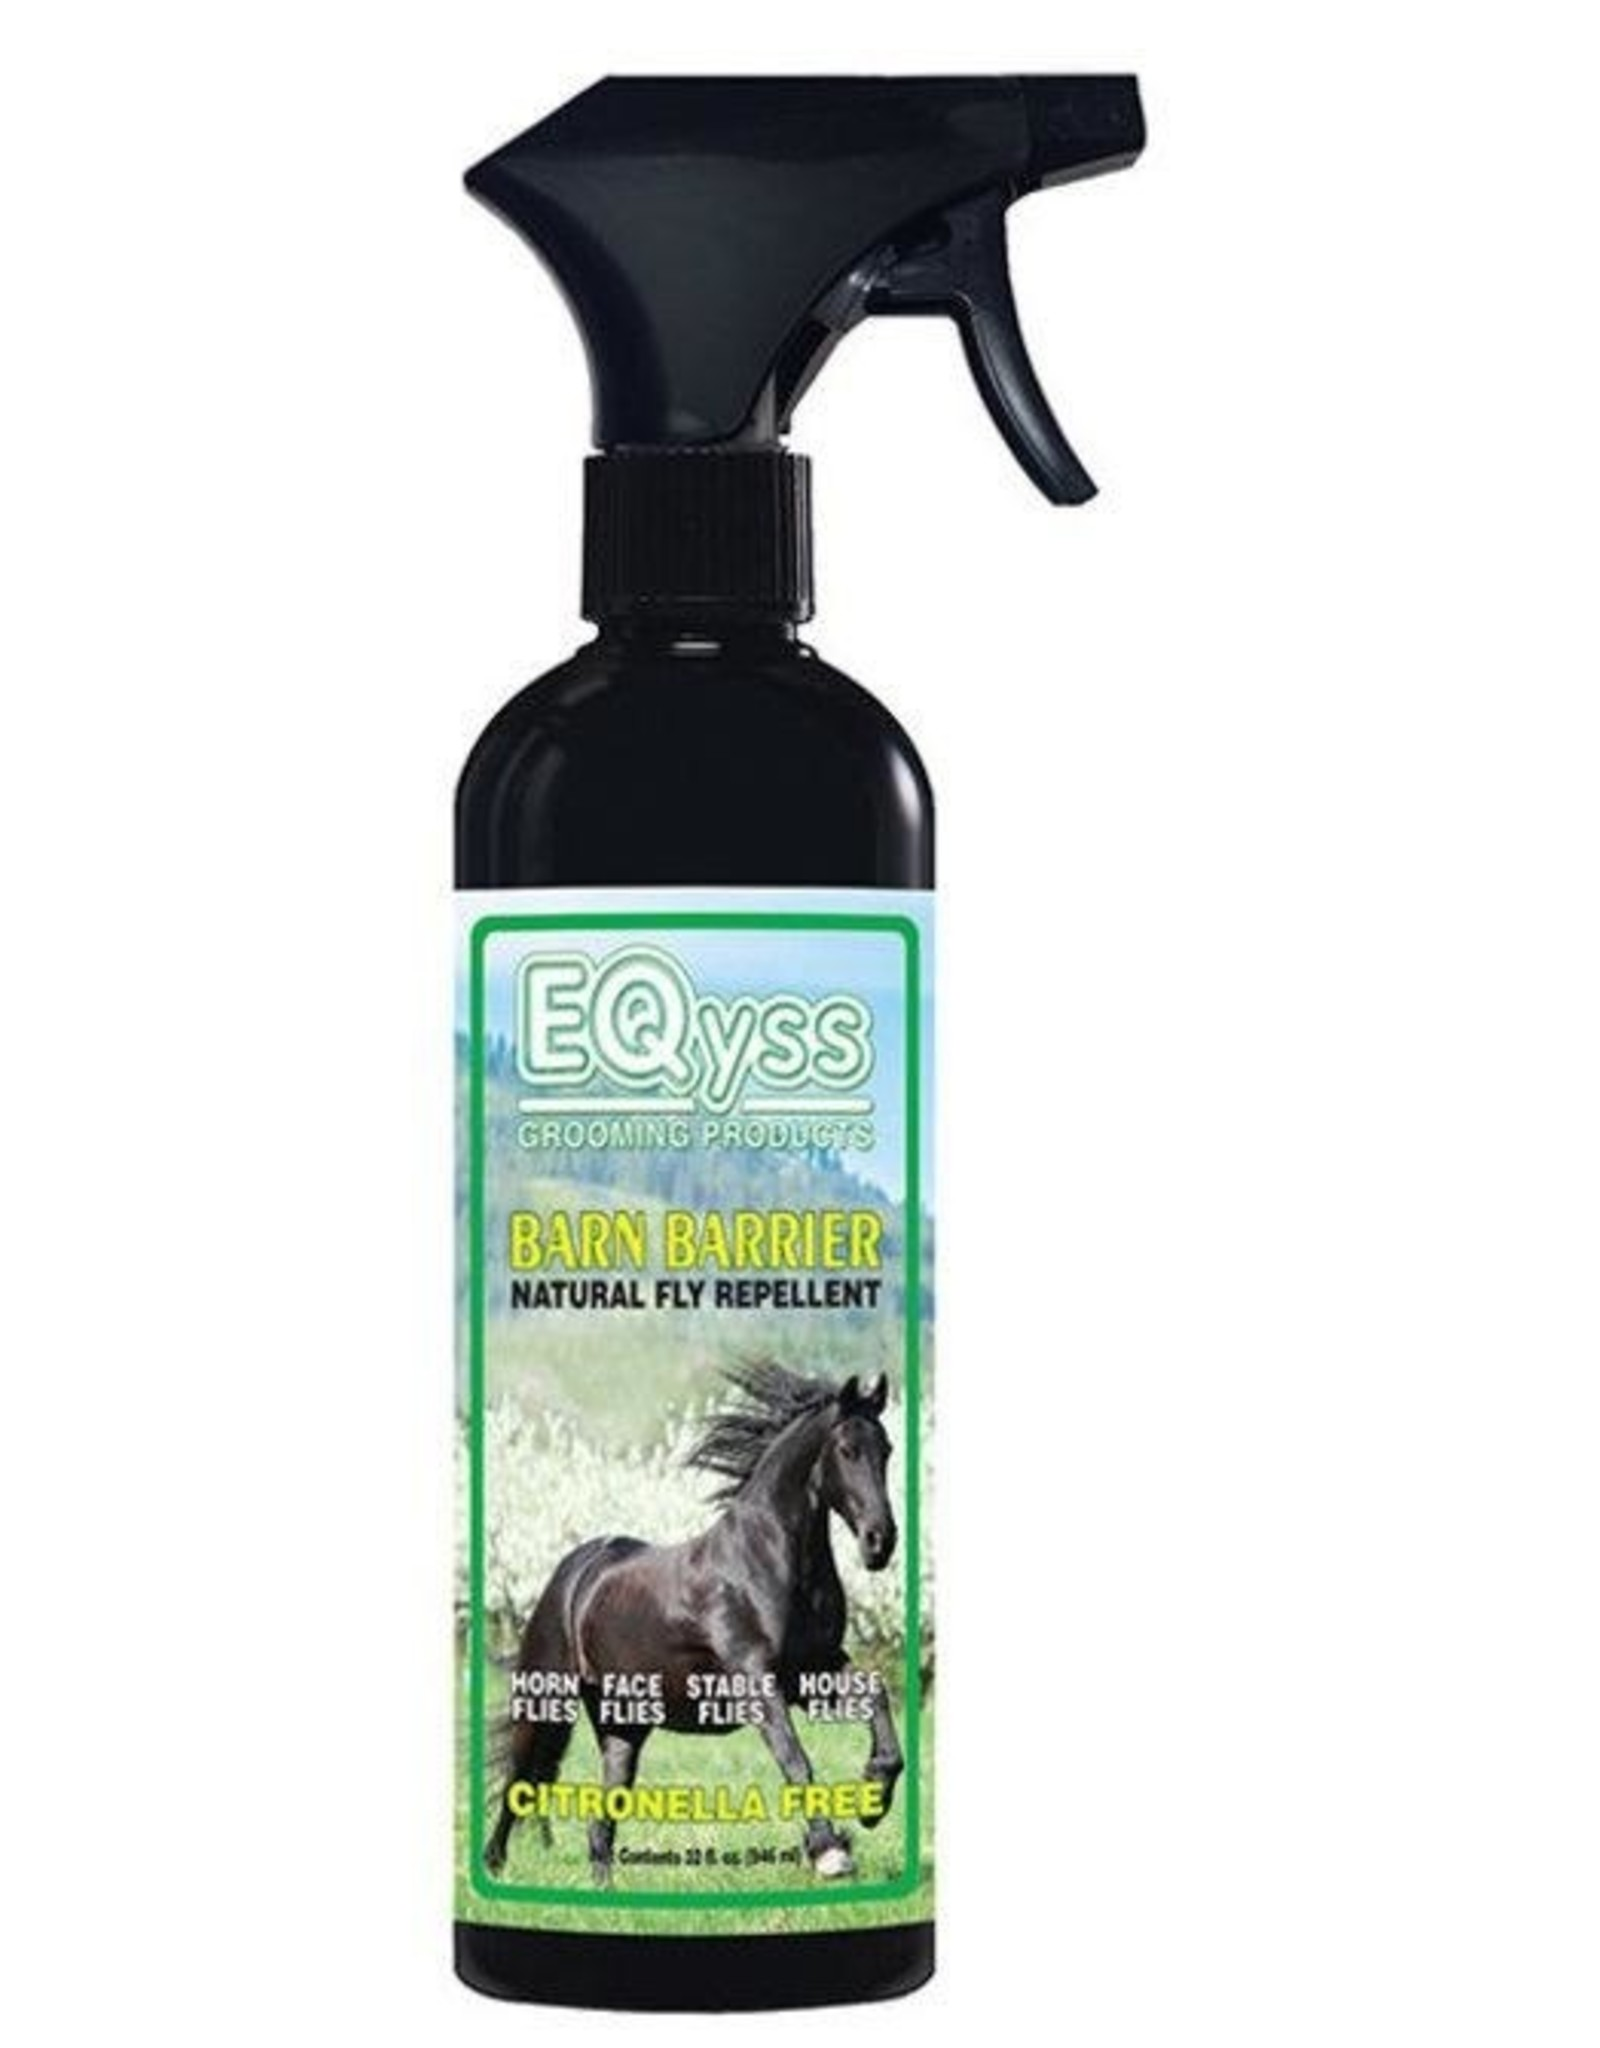 EQyss Barn Barrier Natural Fly Repellent - 32oz